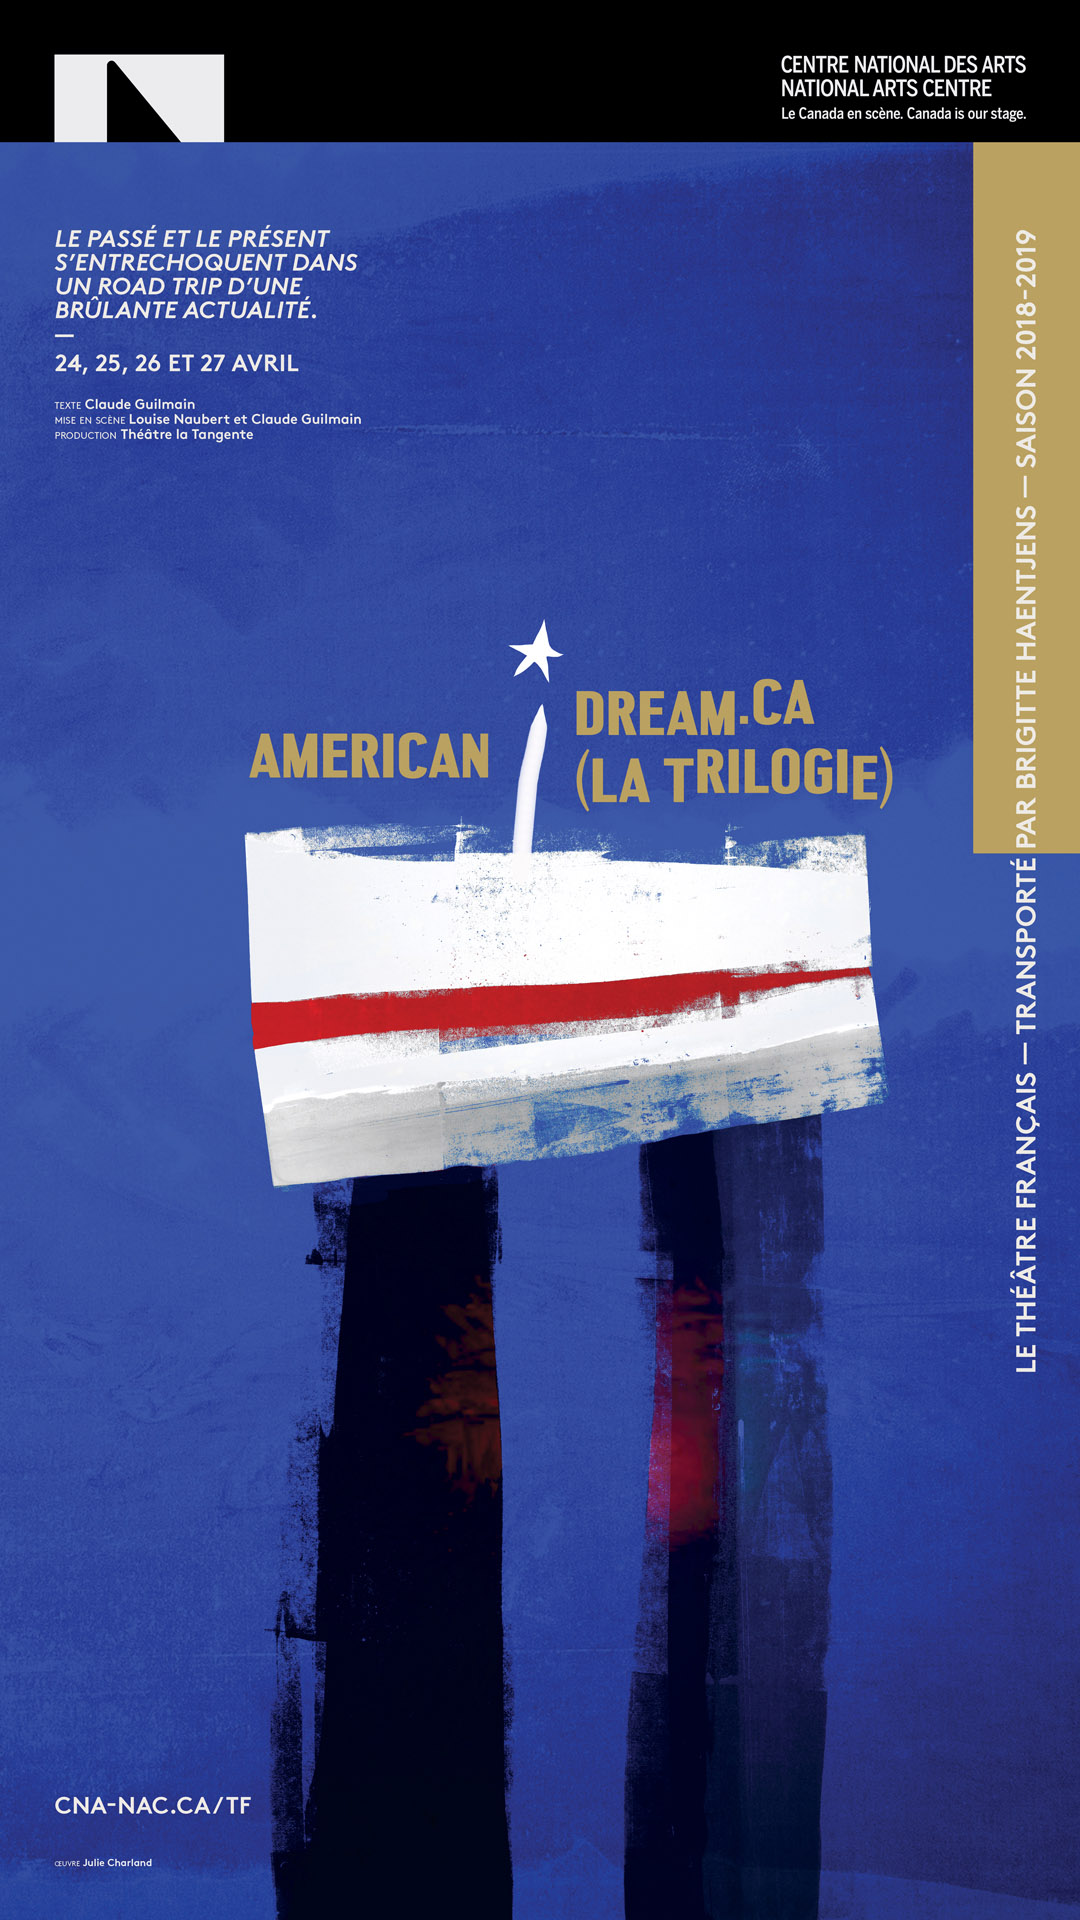 AMERICAN-DREAM.CA